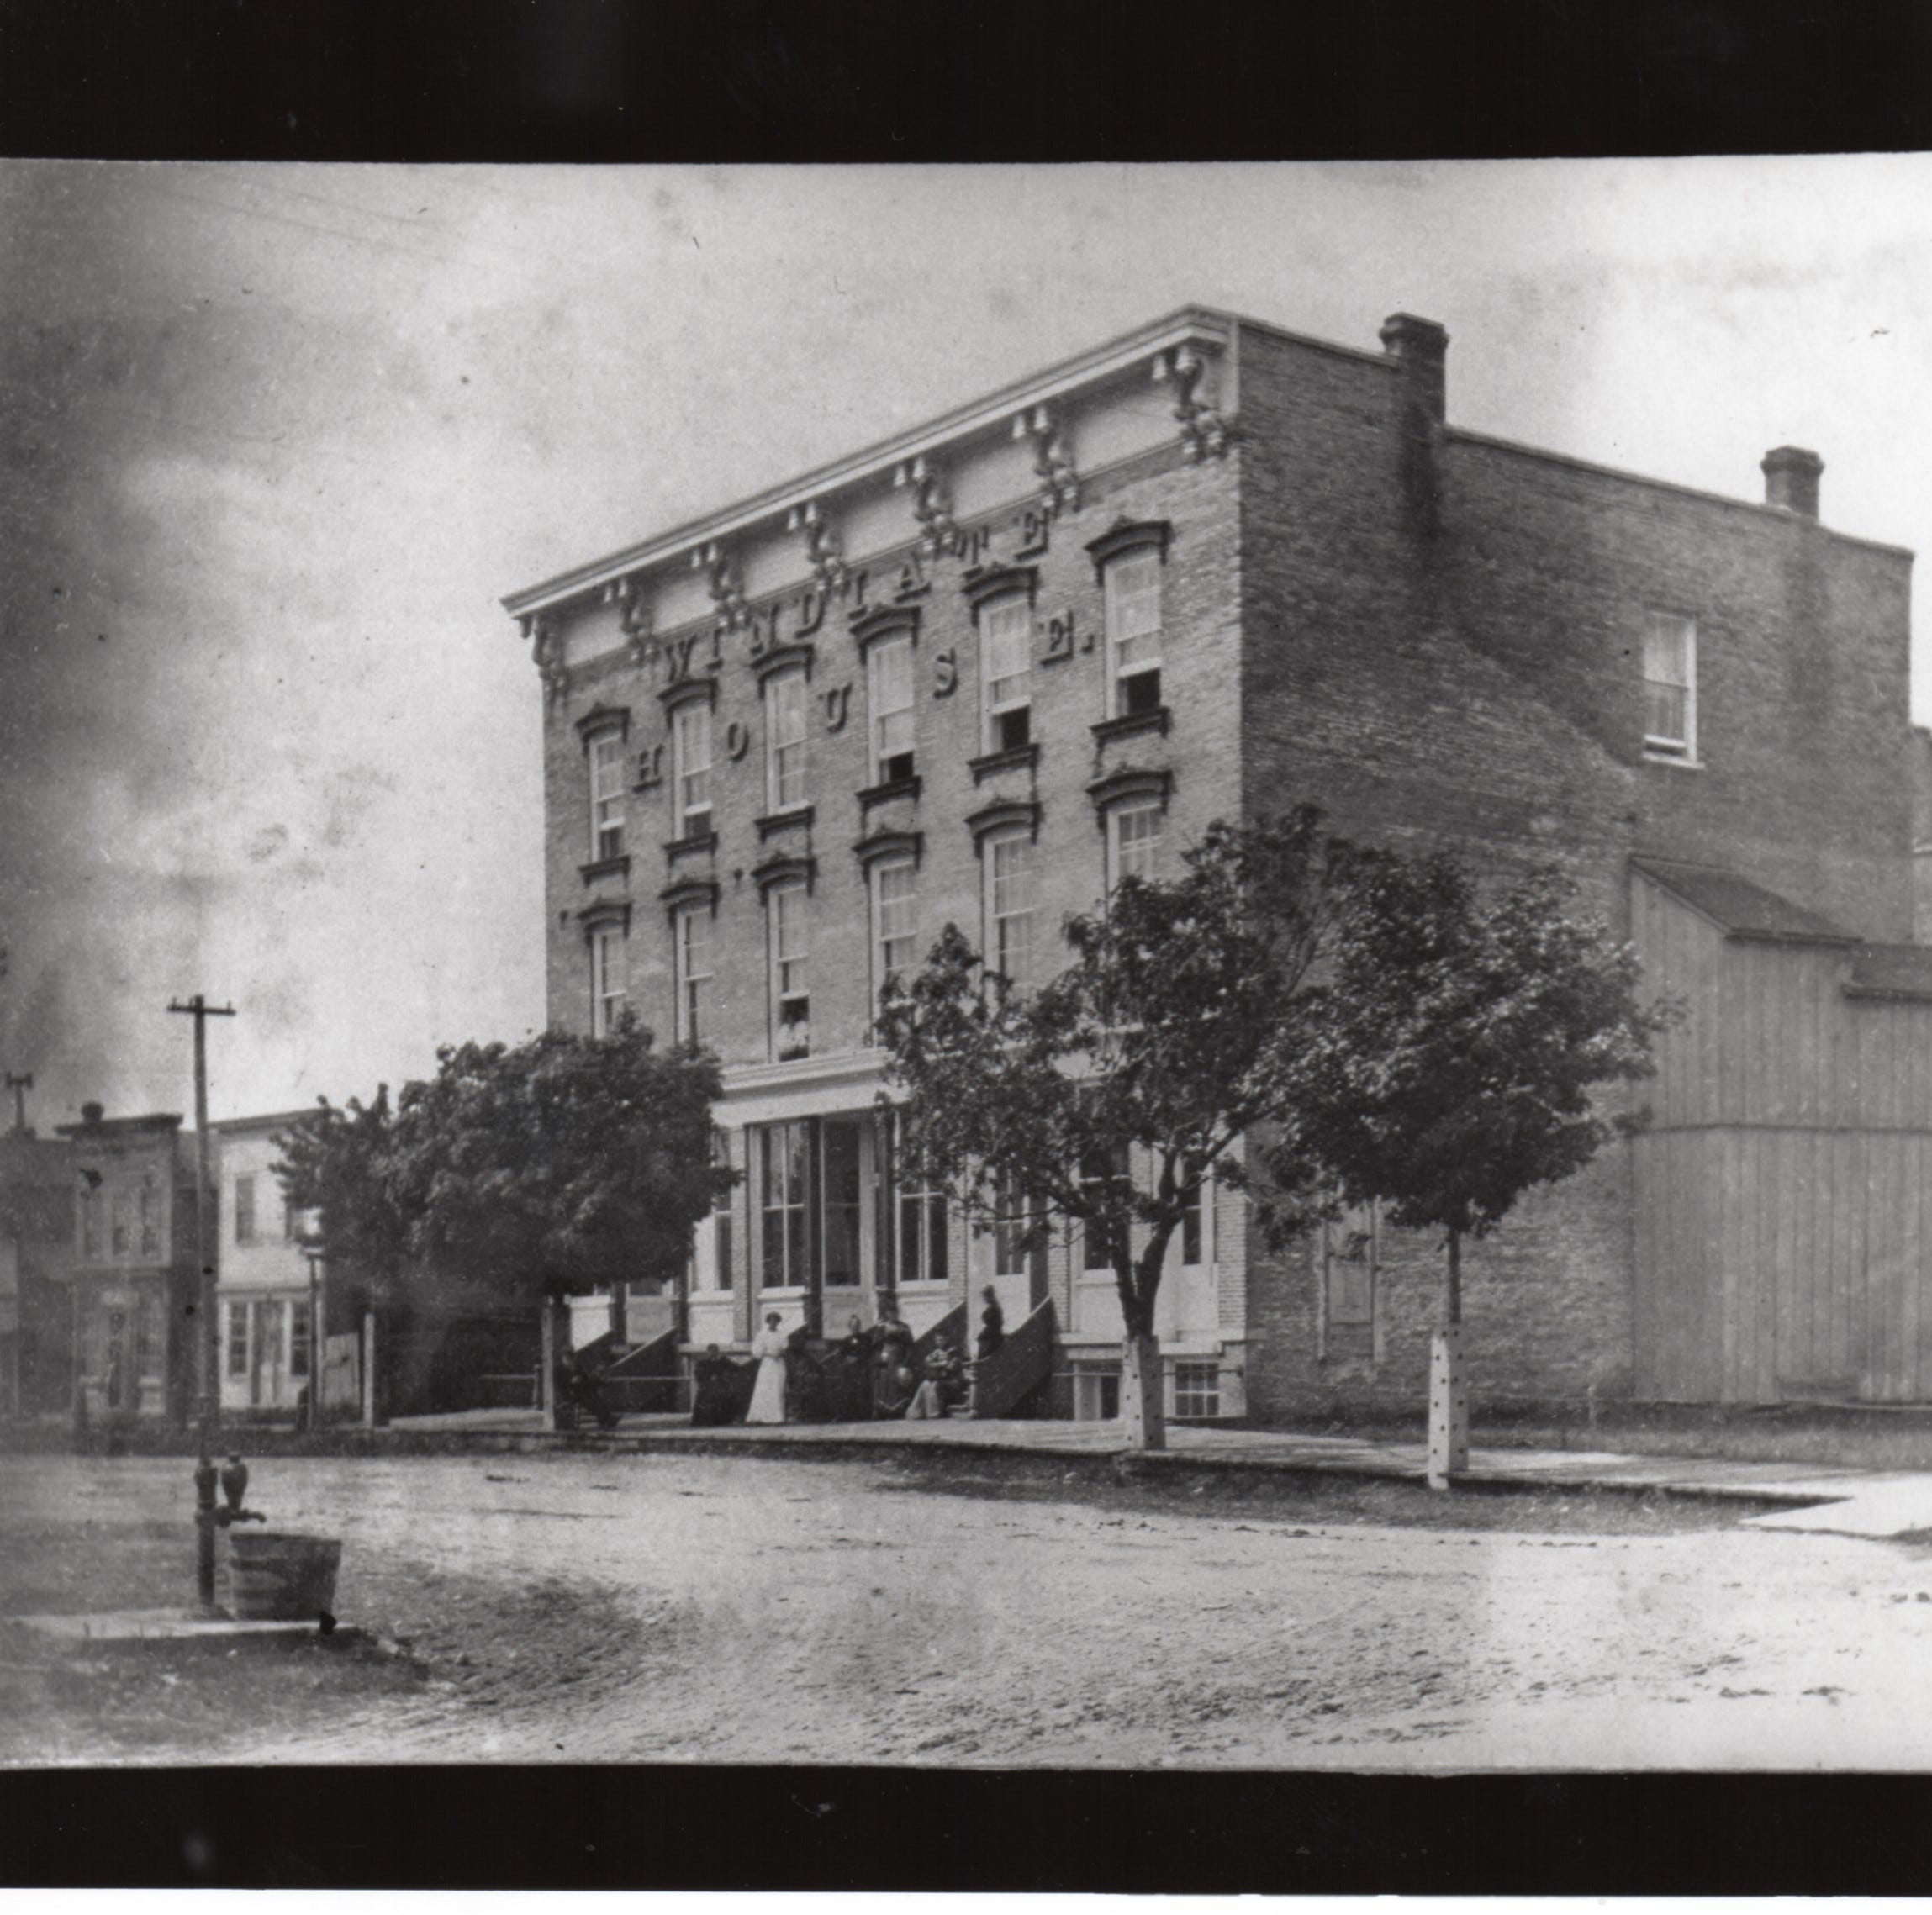 Manitowoc Windiate House was once 'center of social life' in city